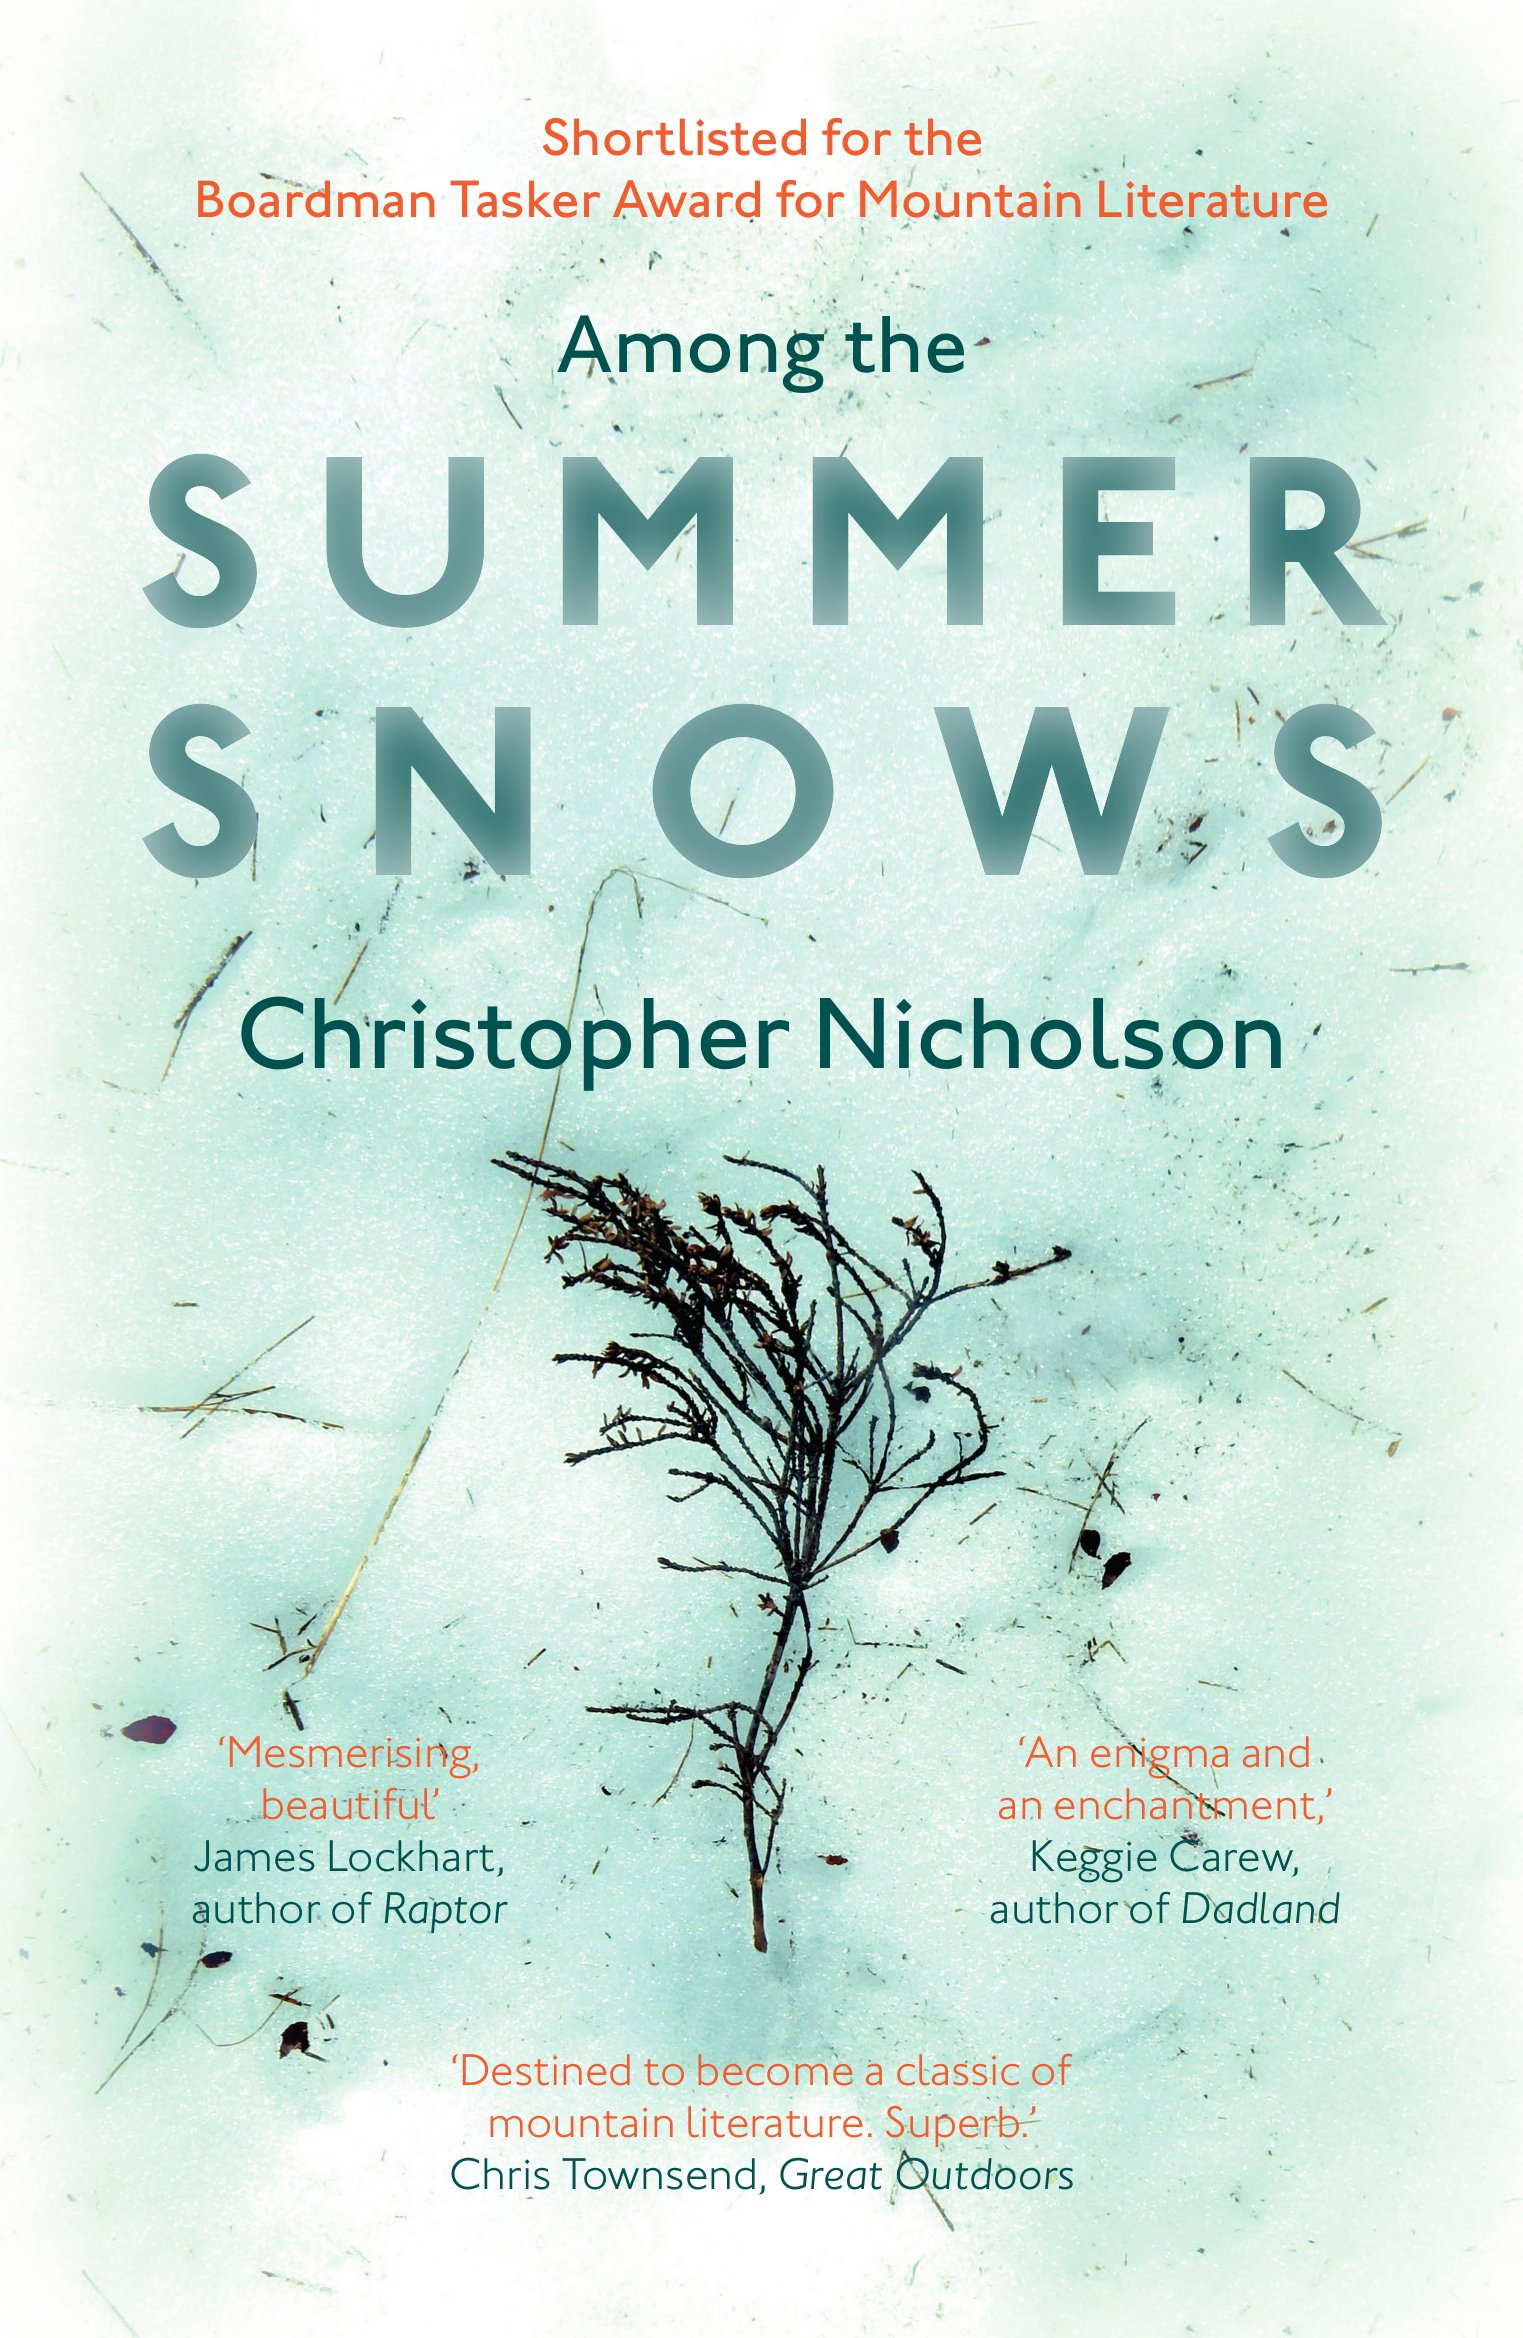 AMONG THE SUMMER SNOWS  Literary fiction, 176pp September Publishing, Jun 17  As summer draws to a close, a few snowbeds survive in the Scottish Highlands. A book full of vivid description and anecdote that explores the meanings of nature, beauty and mortality.